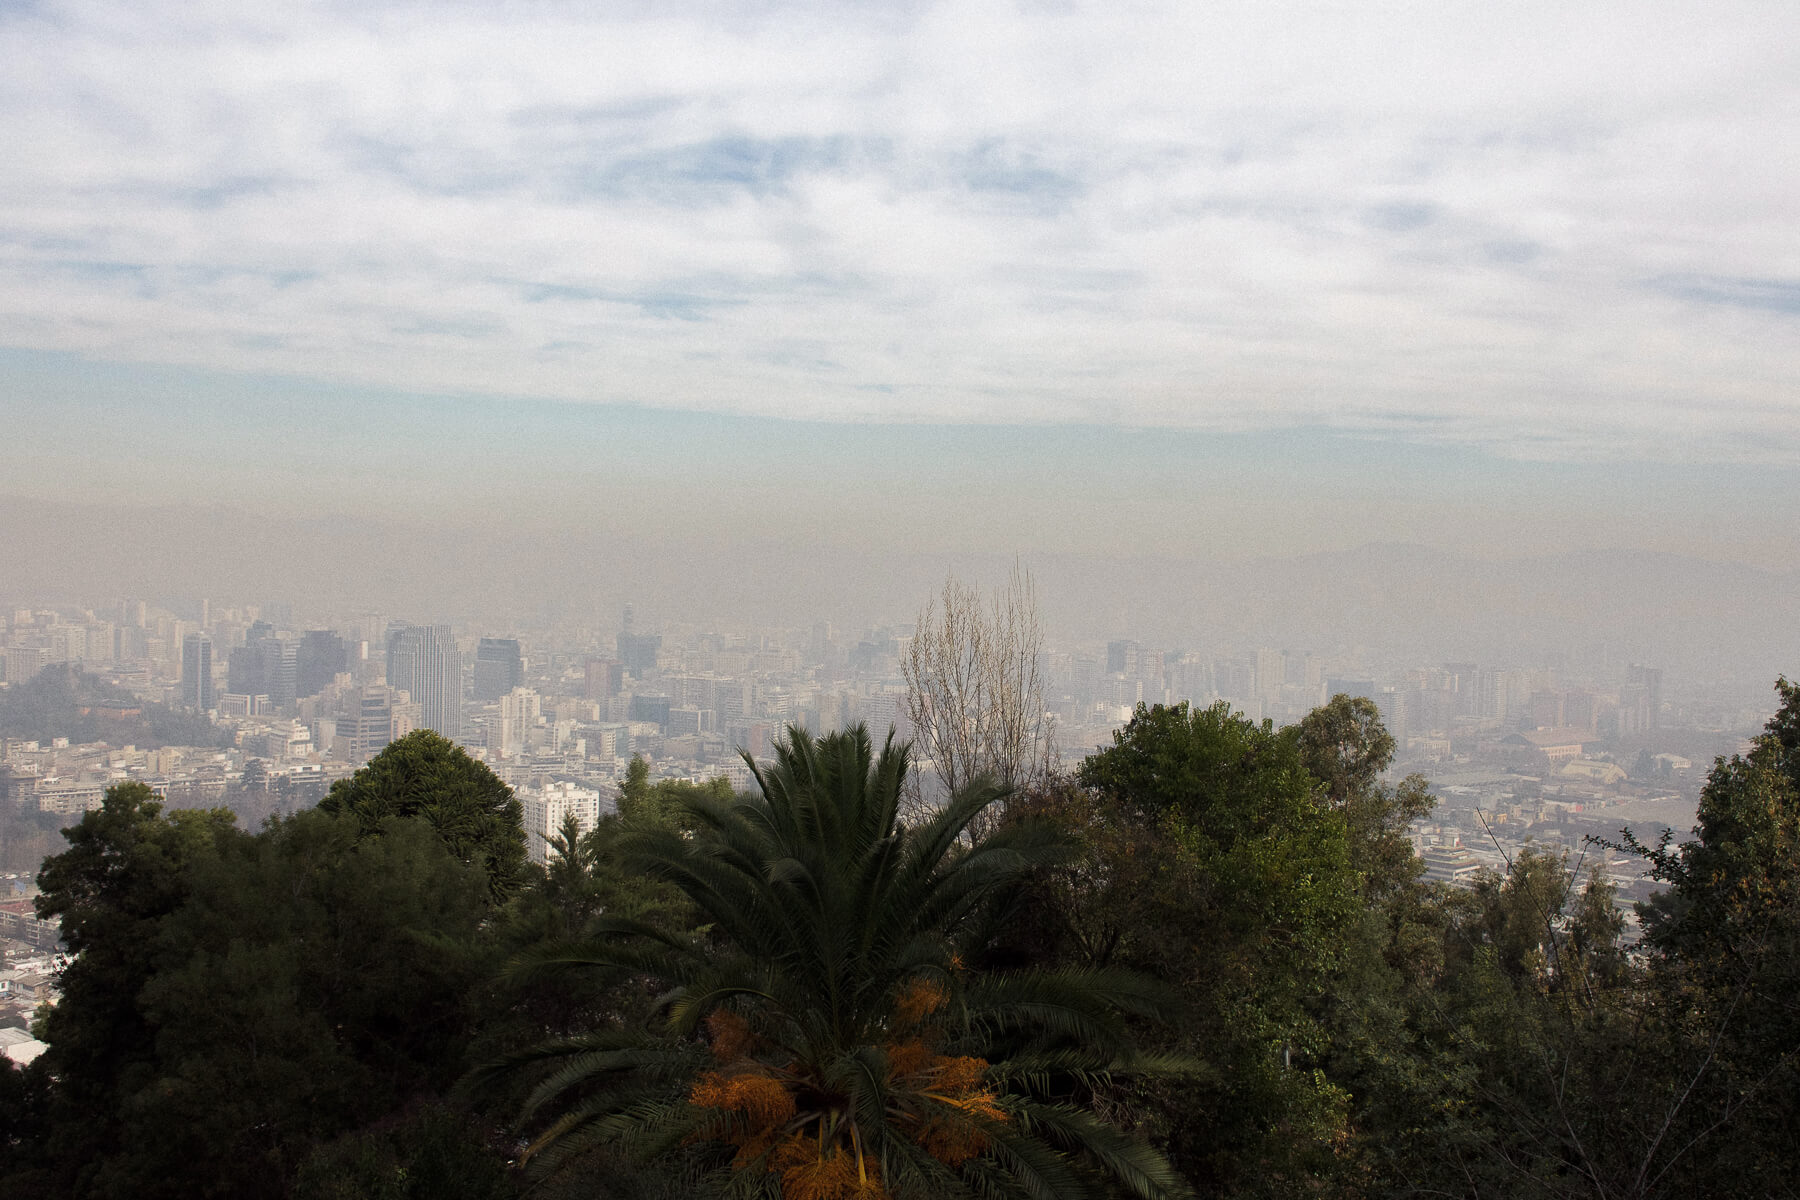 City scape behind a line of trees with smog lying in the air above